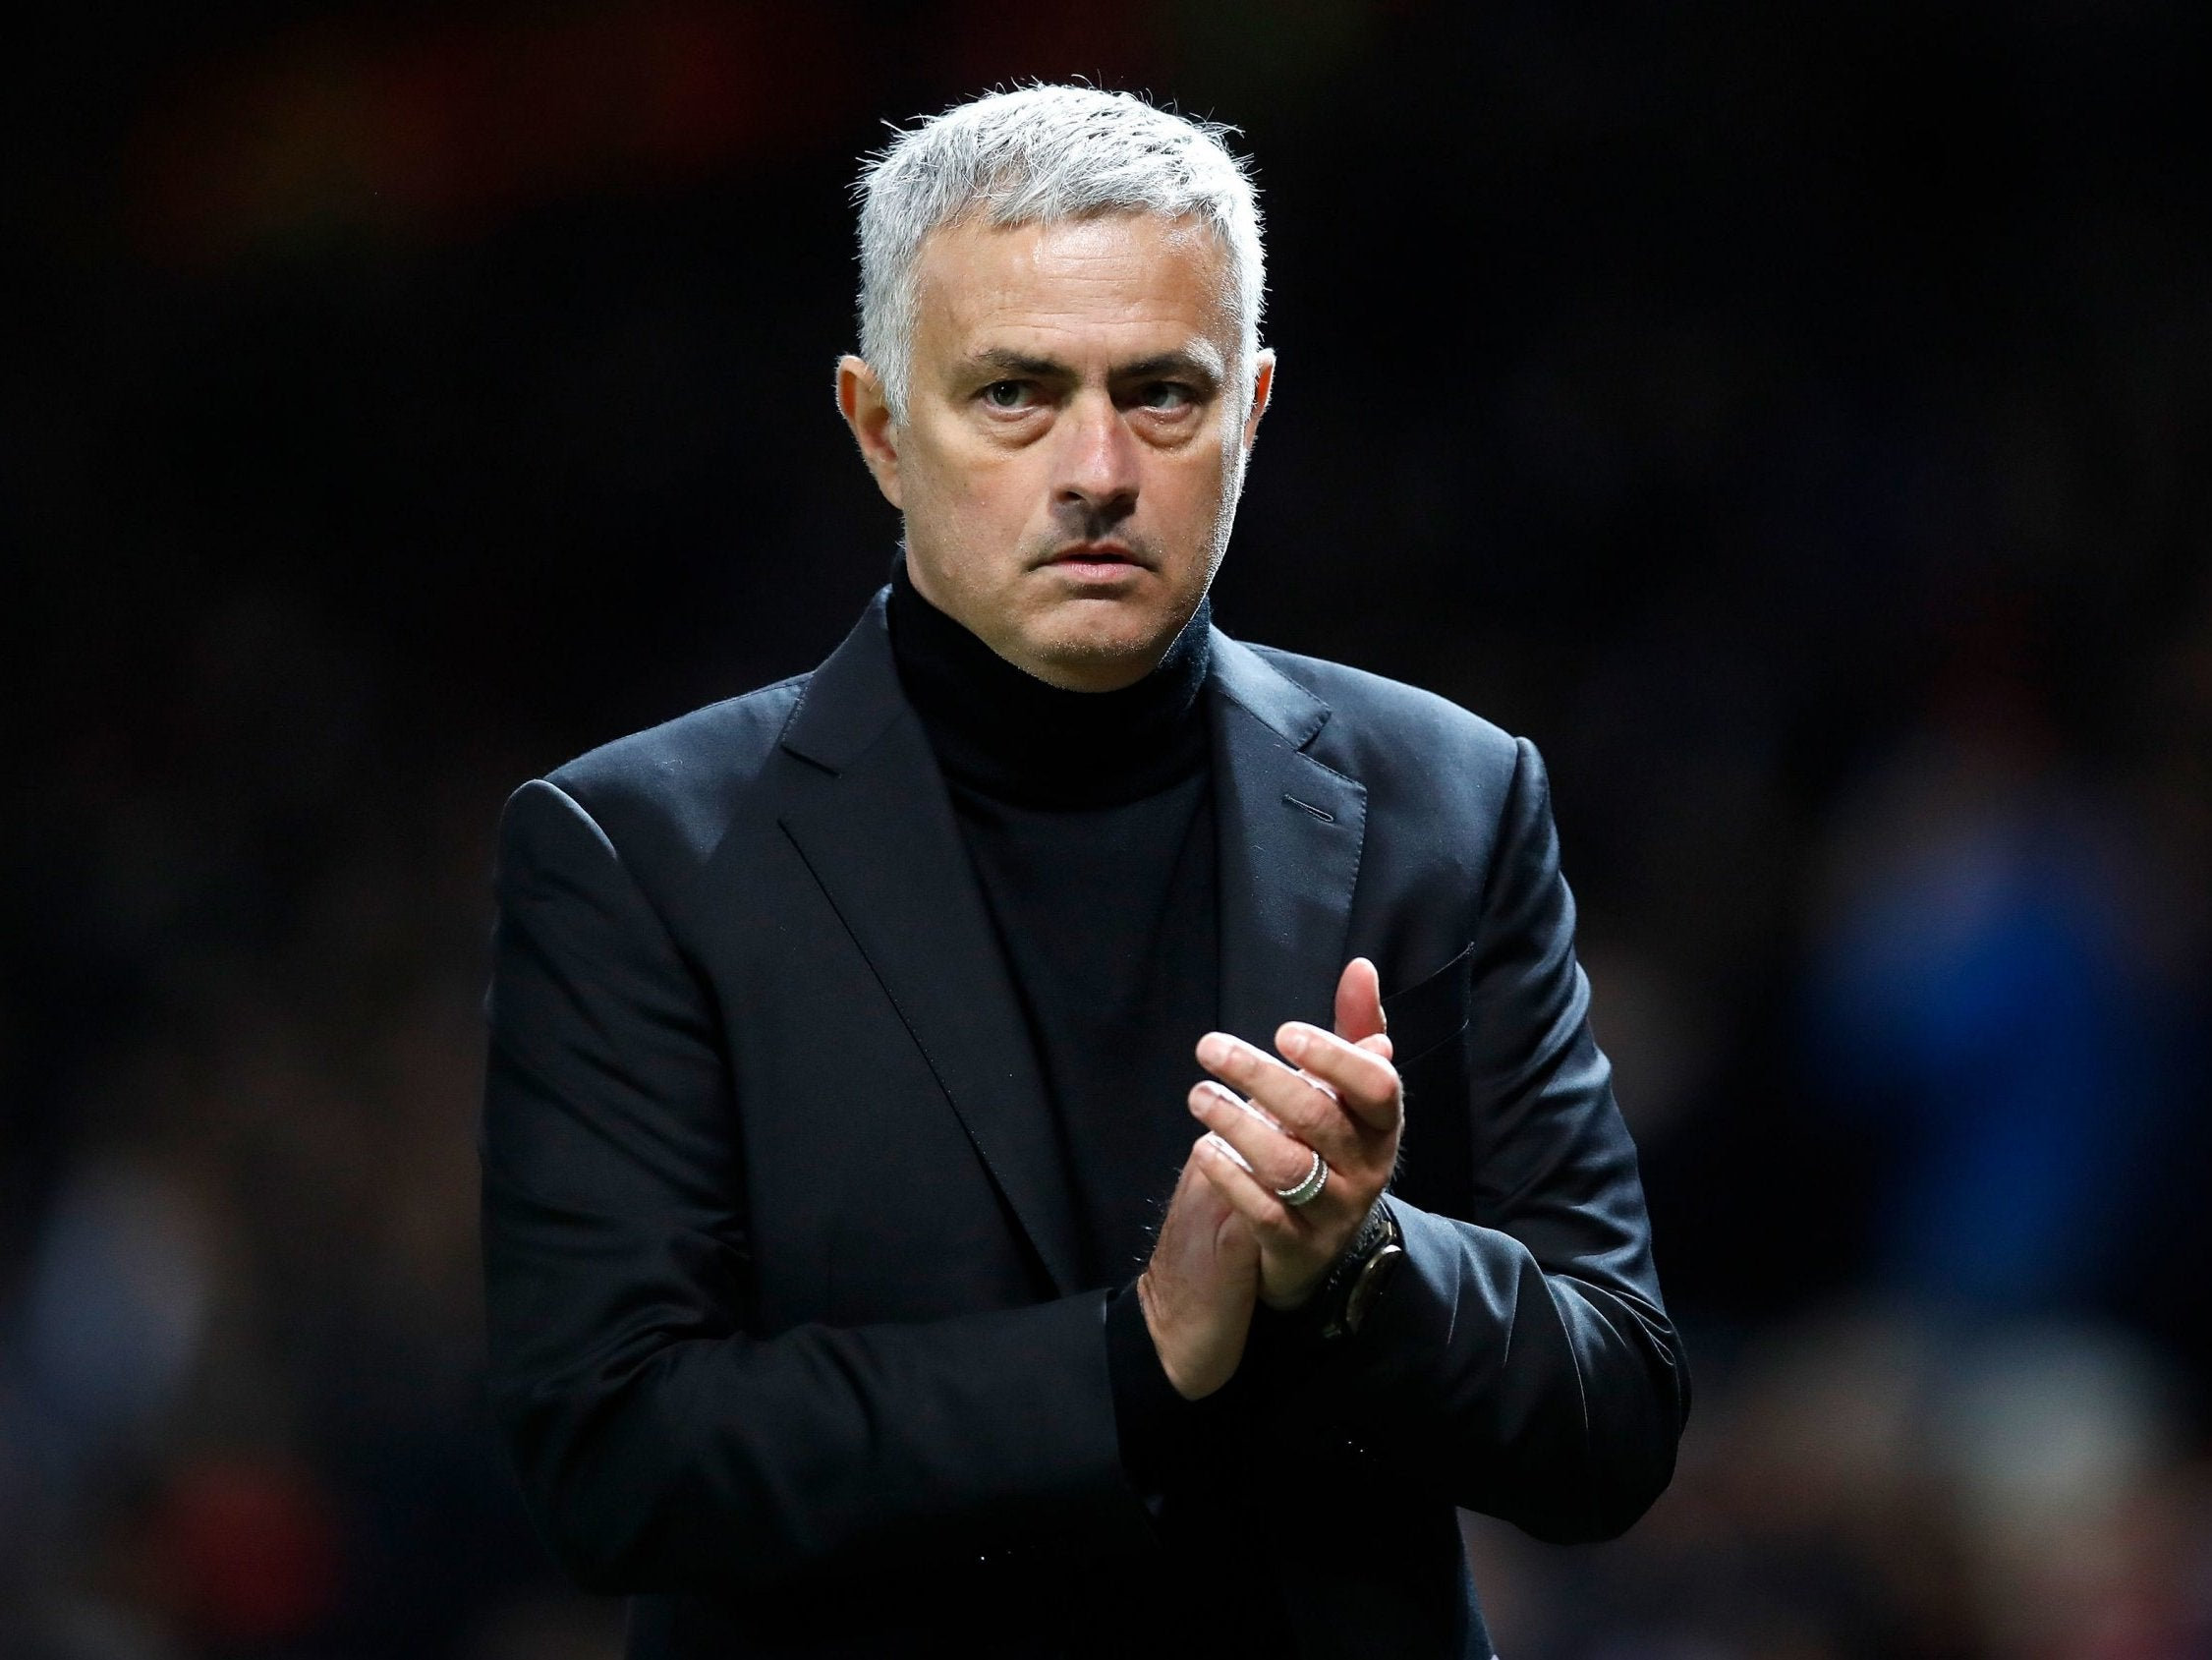 Manchester United manager Jose Mourinho escapes punishment for actions following Newcastle win